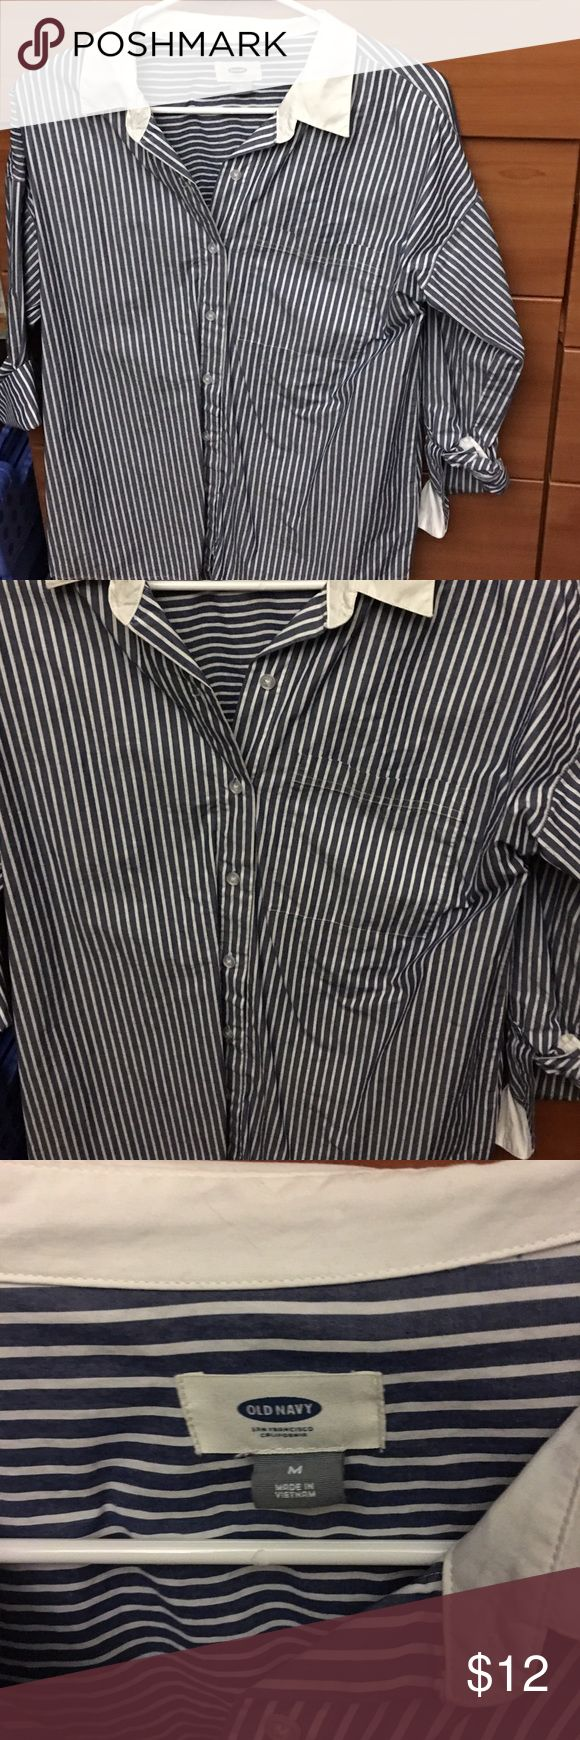 Pinstripe Oxford Style Shirt Boyfriend style women's oxford shirt. Hits below hips so great with jeans or over leggings! Size medium. Wrinkled a bit in photo bc just washed. Old Navy Tops Button Down Shirts